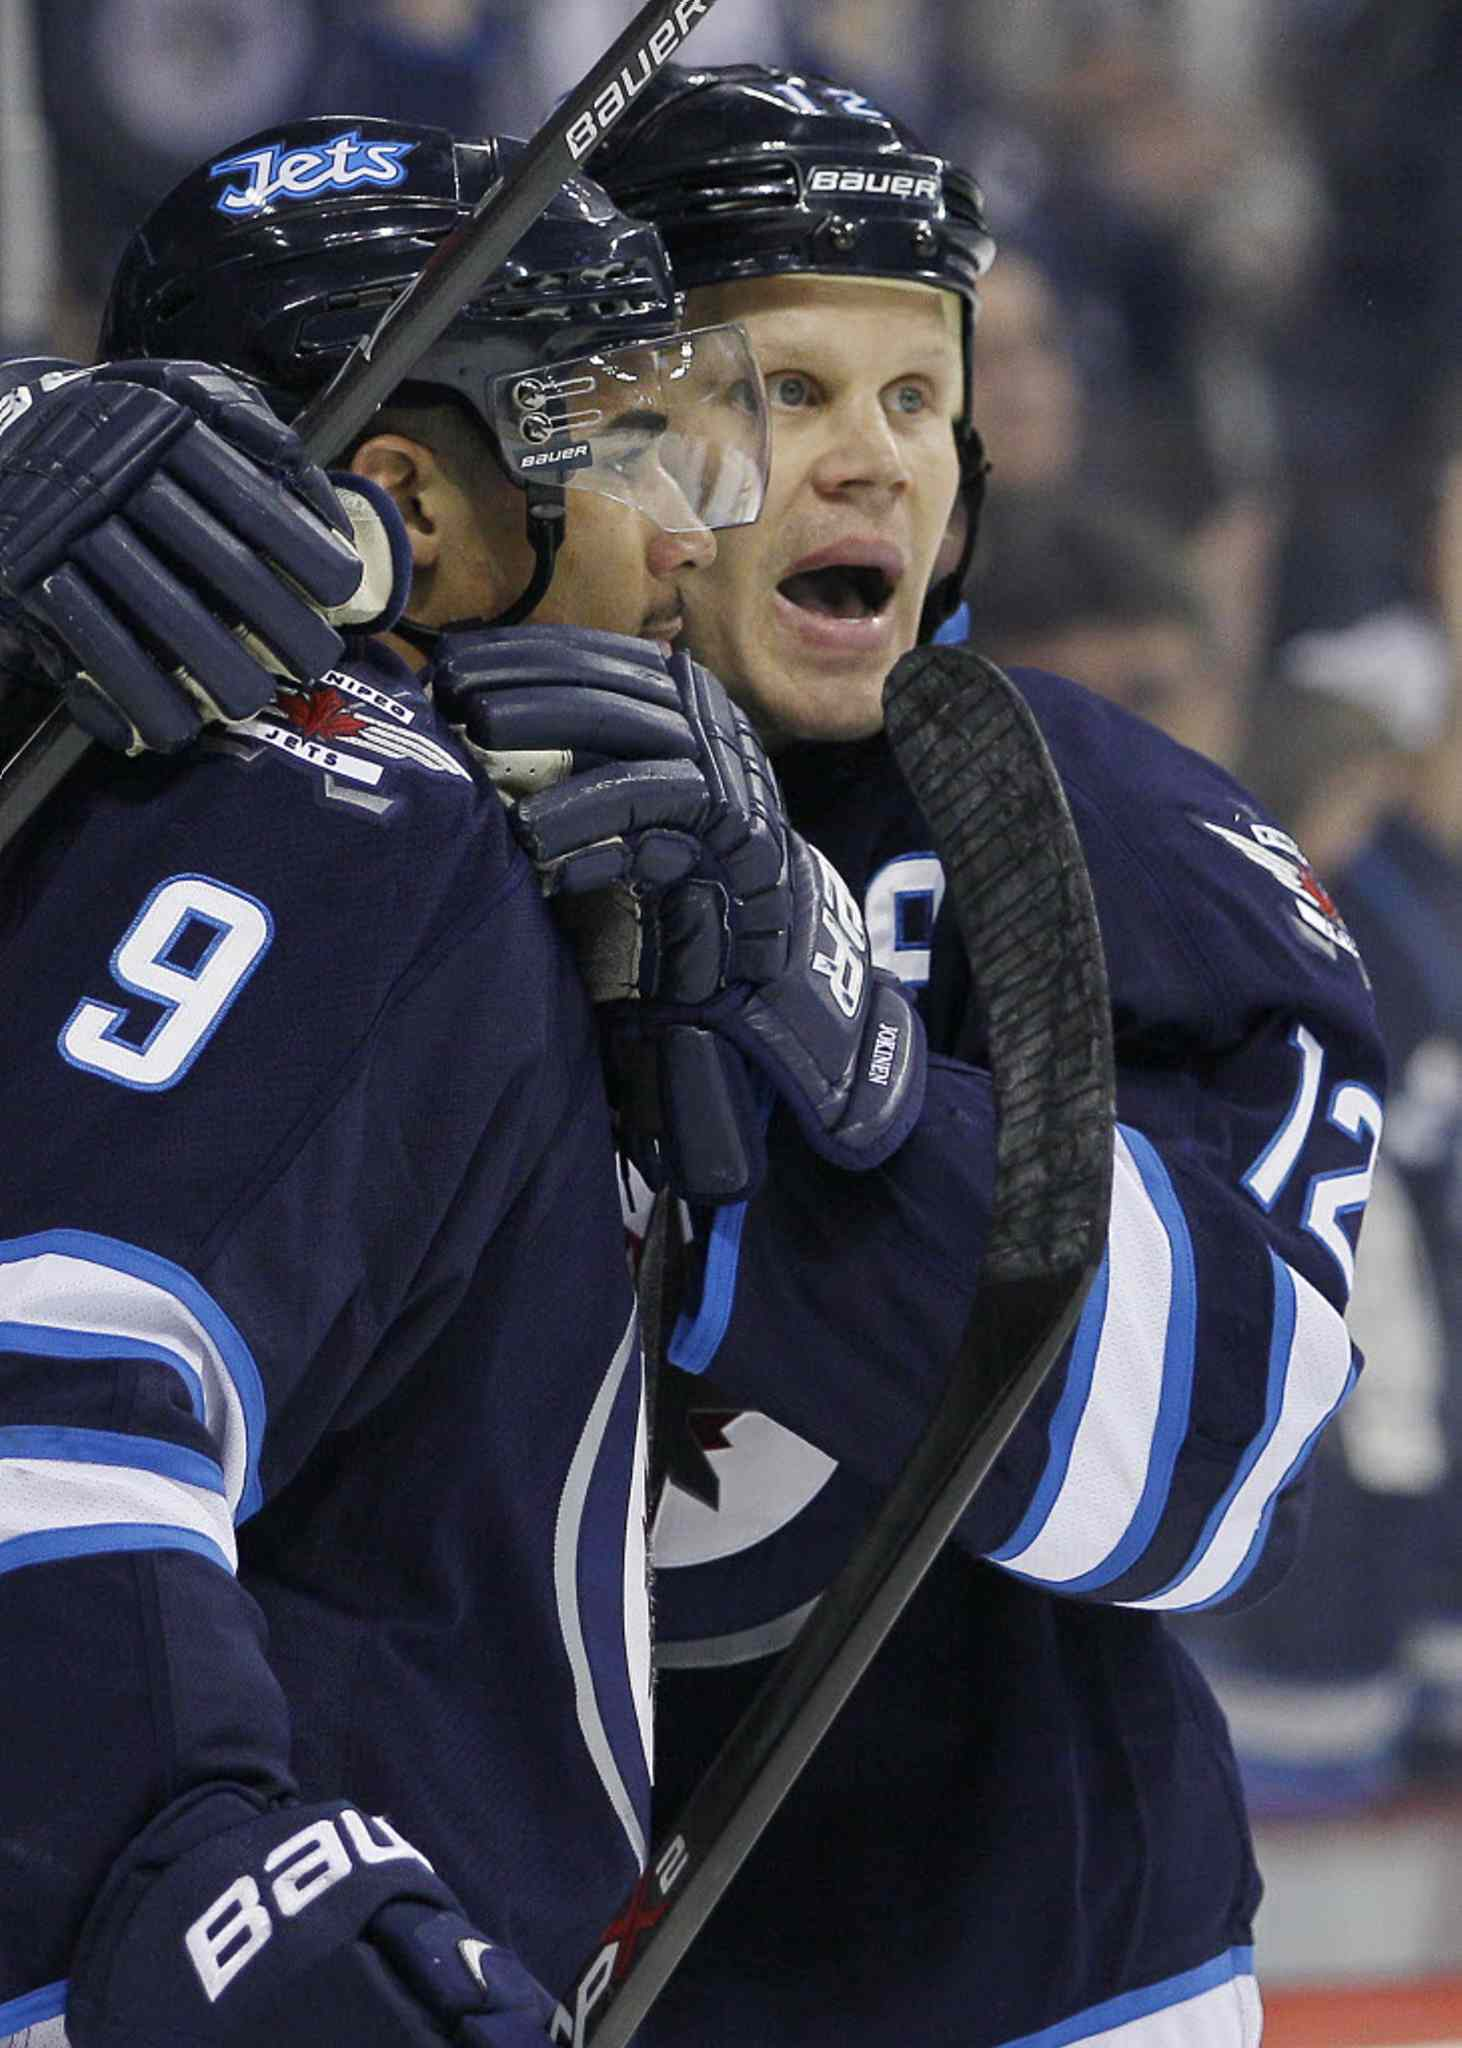 Winnipeg Jets' Olli Jokinen (12) and Evander Kane (9) celebrate Jokinen's goal during the second period on Thursday.